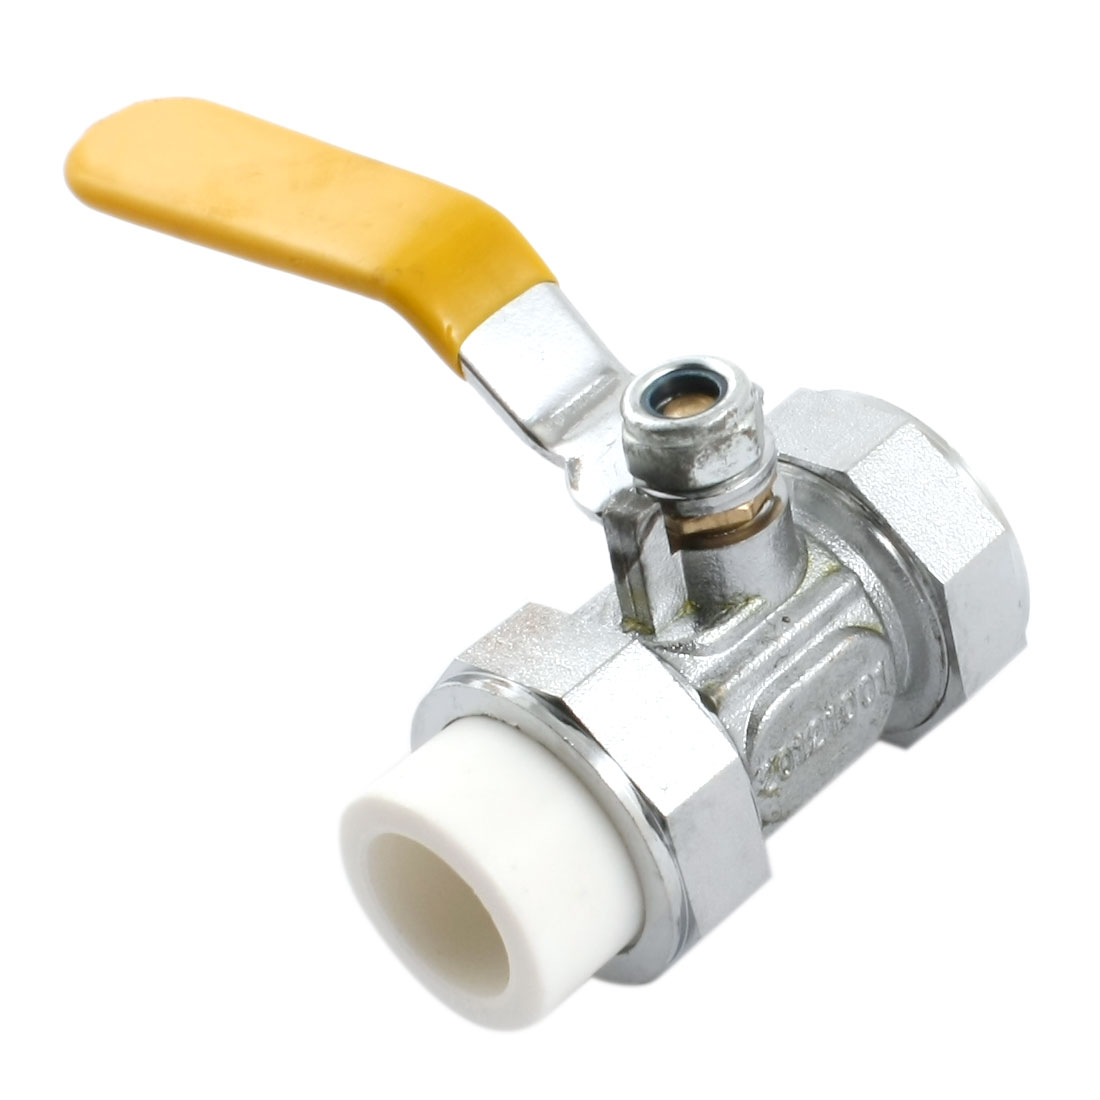 Double Headed 20mm to 20mm Yellow Lever Handle Copper Plating PPR Ball Valve